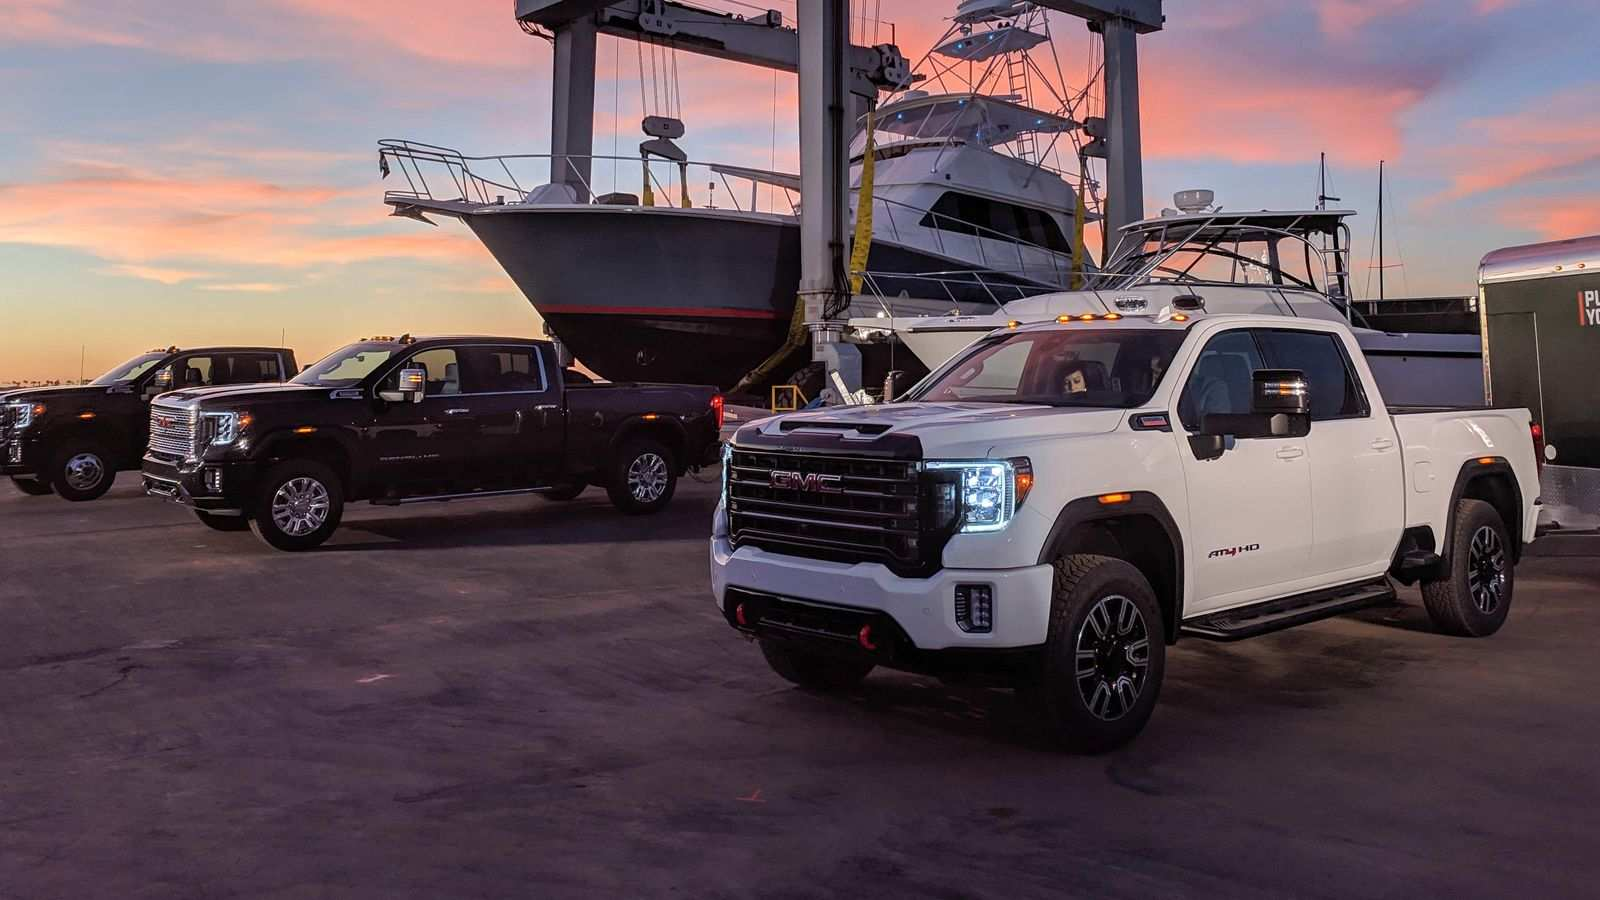 56 Concept of Gmc Diesel 2020 New Concept by Gmc Diesel 2020